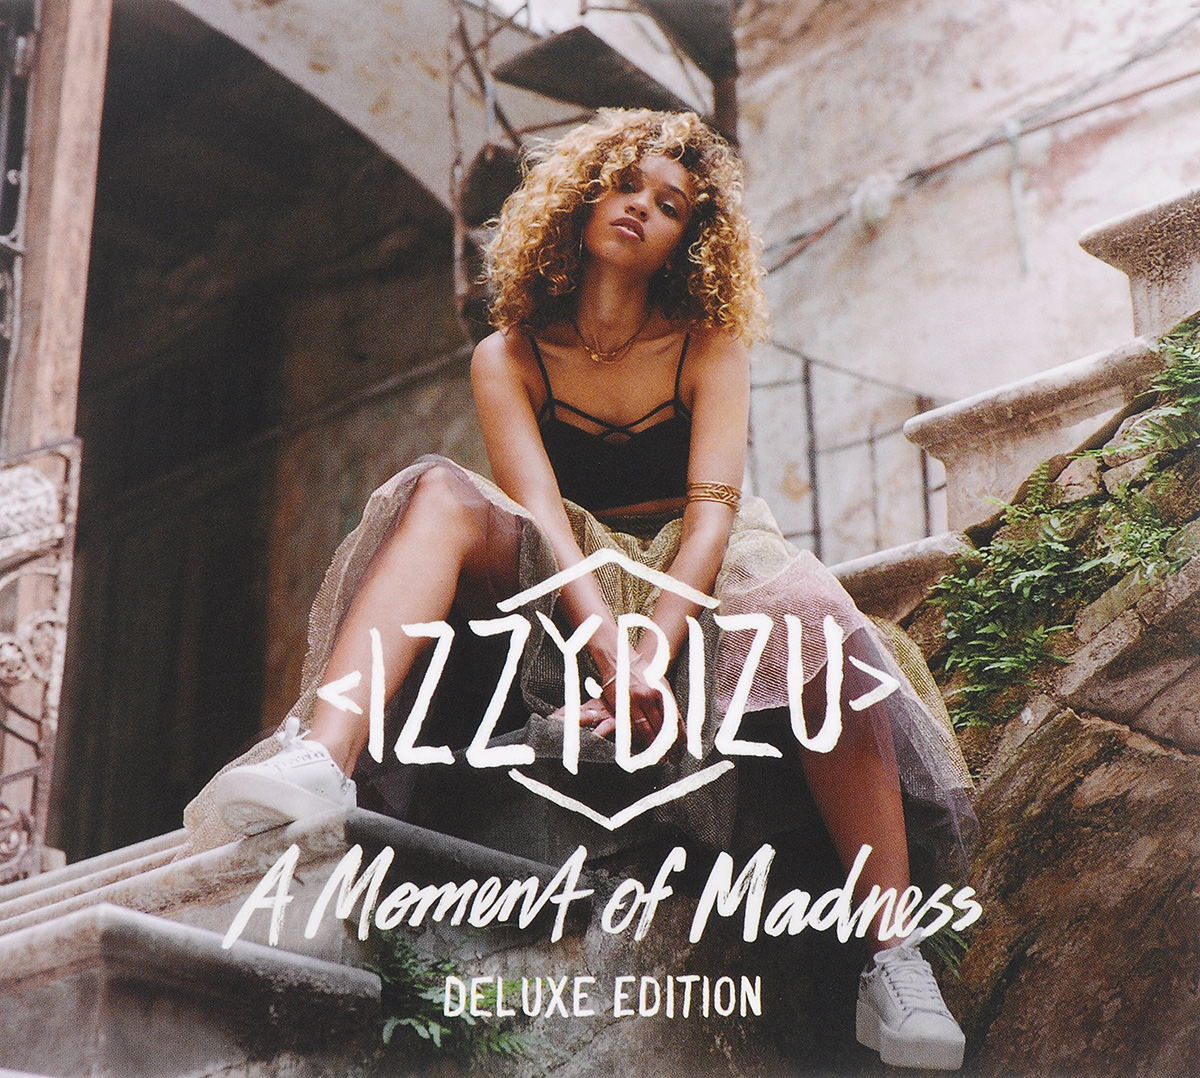 Izzy Bizu. A Moment Of Madness. Deluxe Edition